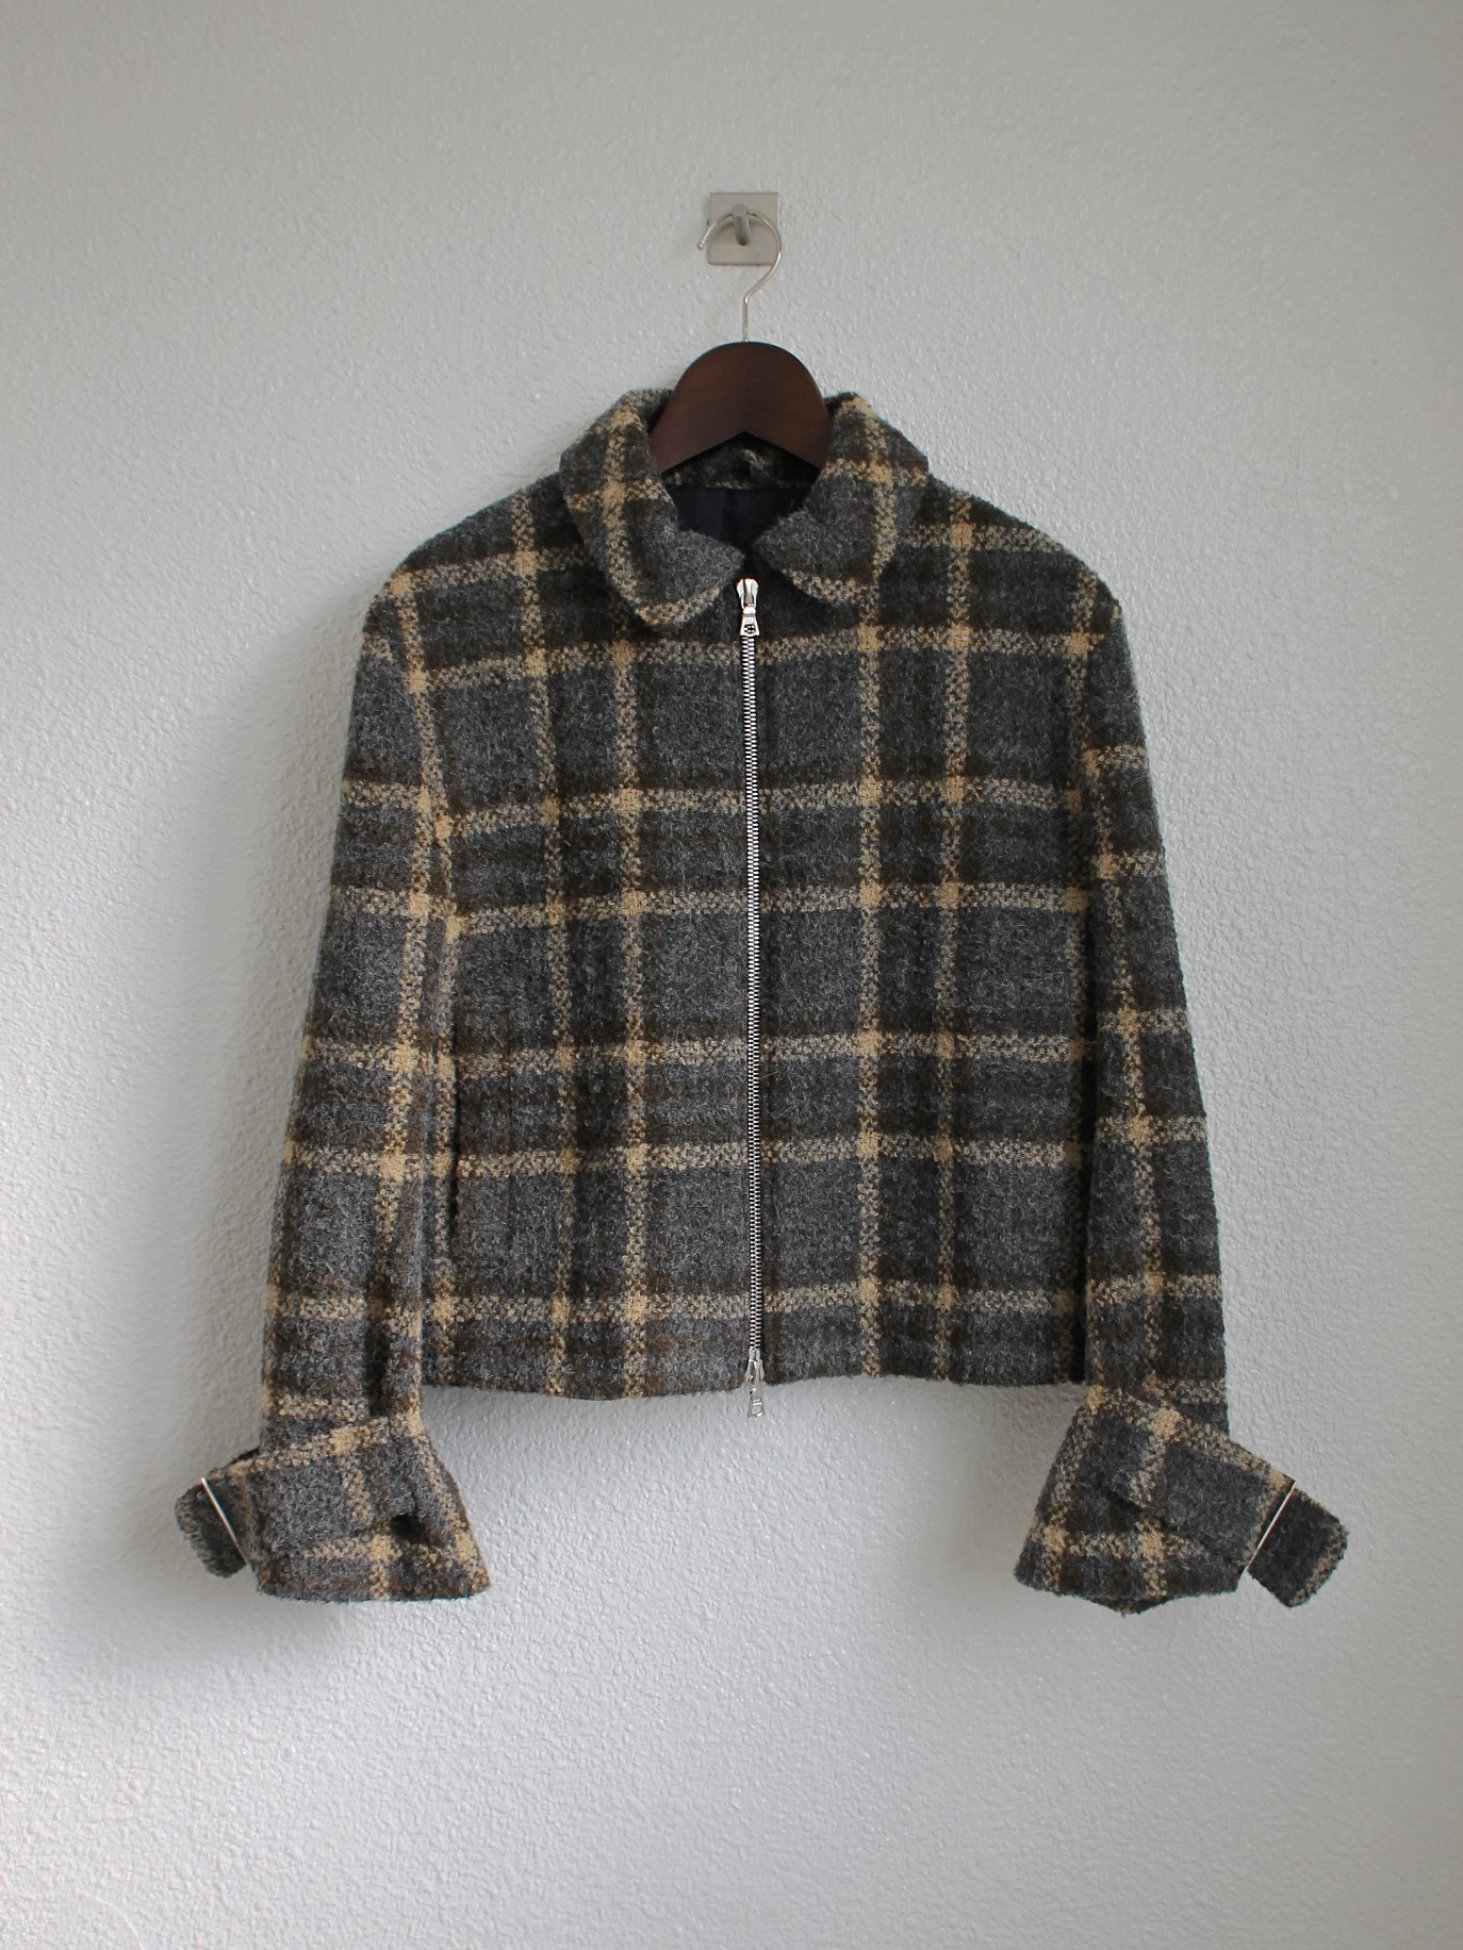 [An Irrational Element] Childhood Jacket - Plaid